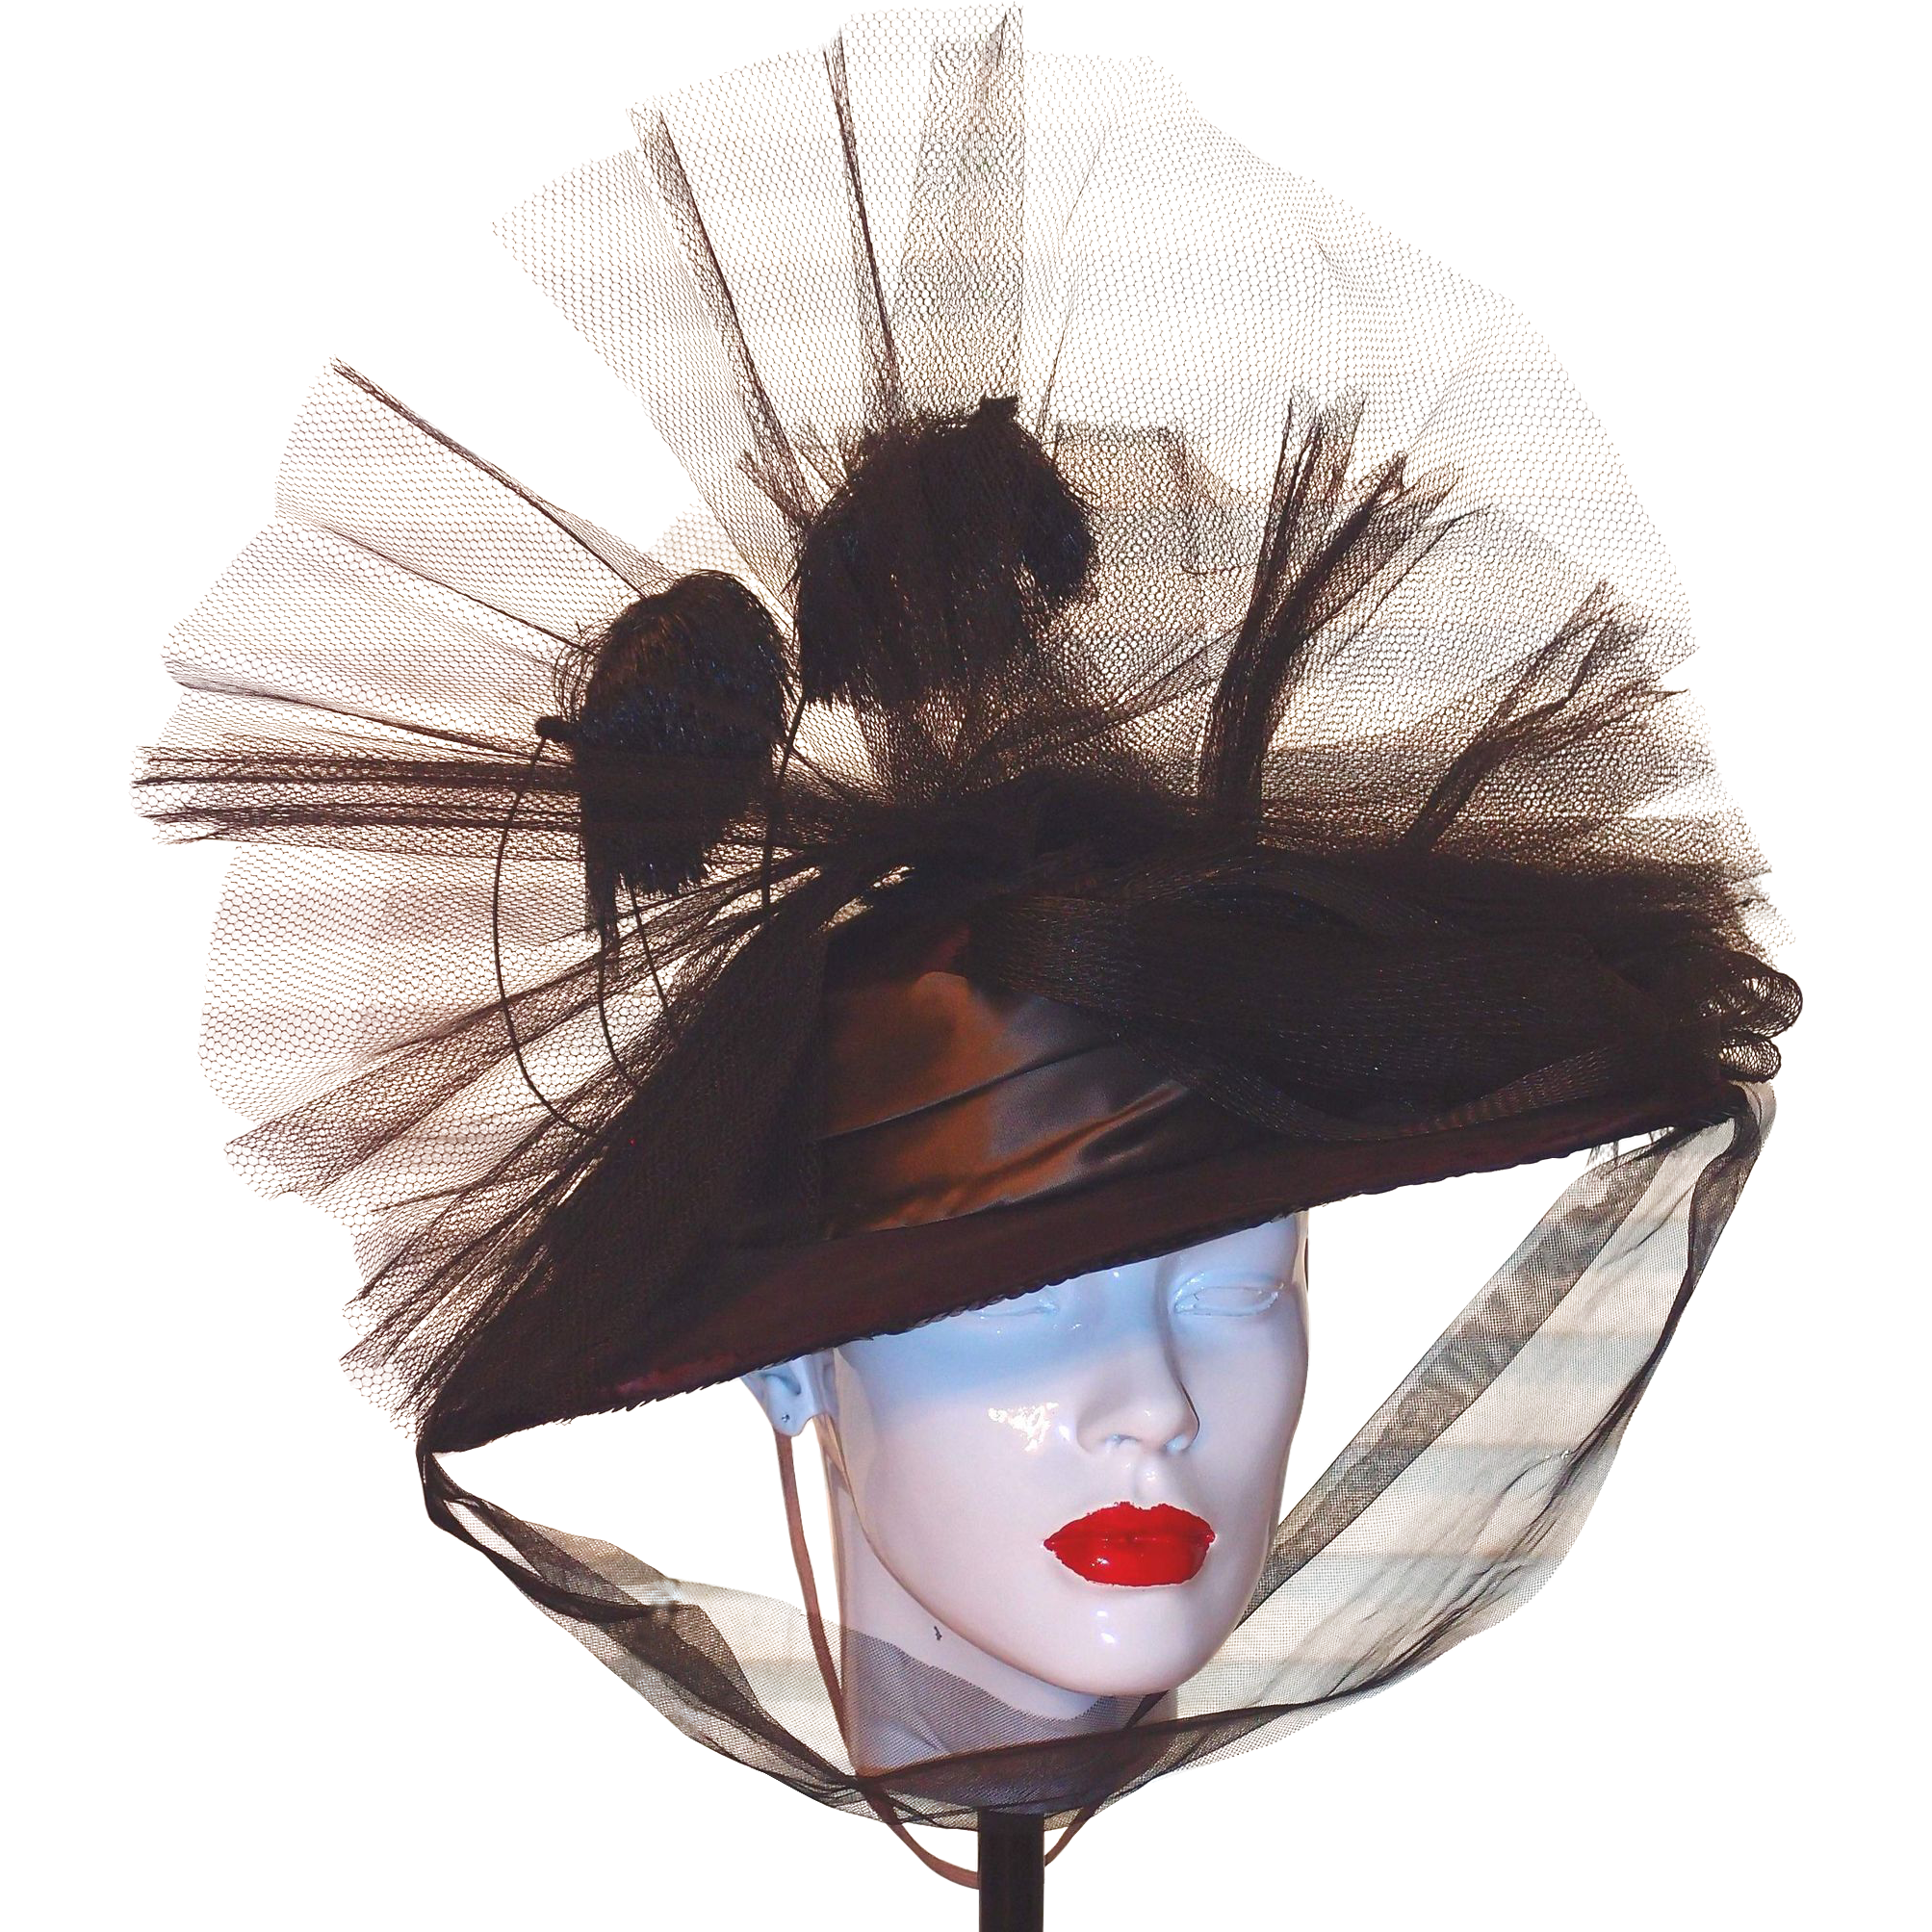 cd6c2250aee Original Theater Hat from 1940 s by Designer M. Richardson for a Federico  Fellini Movie Production.